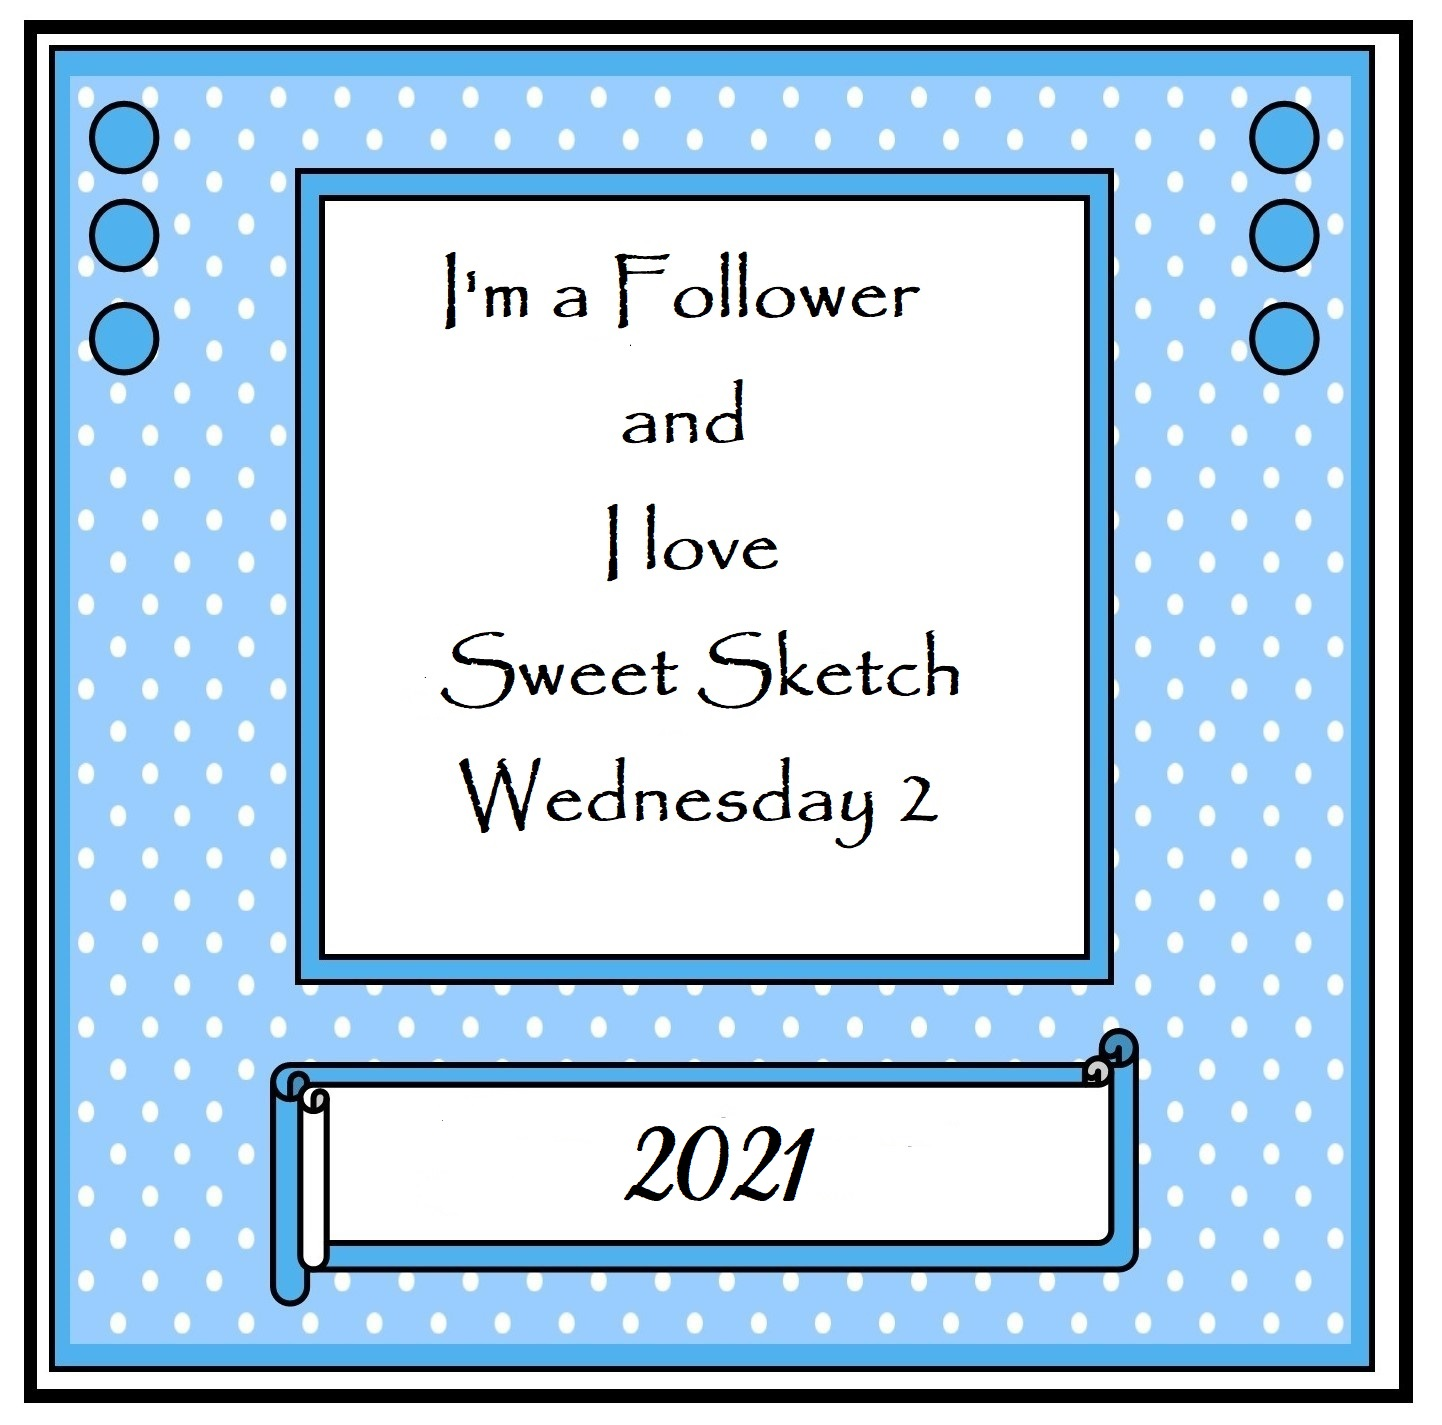 I Love Sweet Sketch Wednesday 2